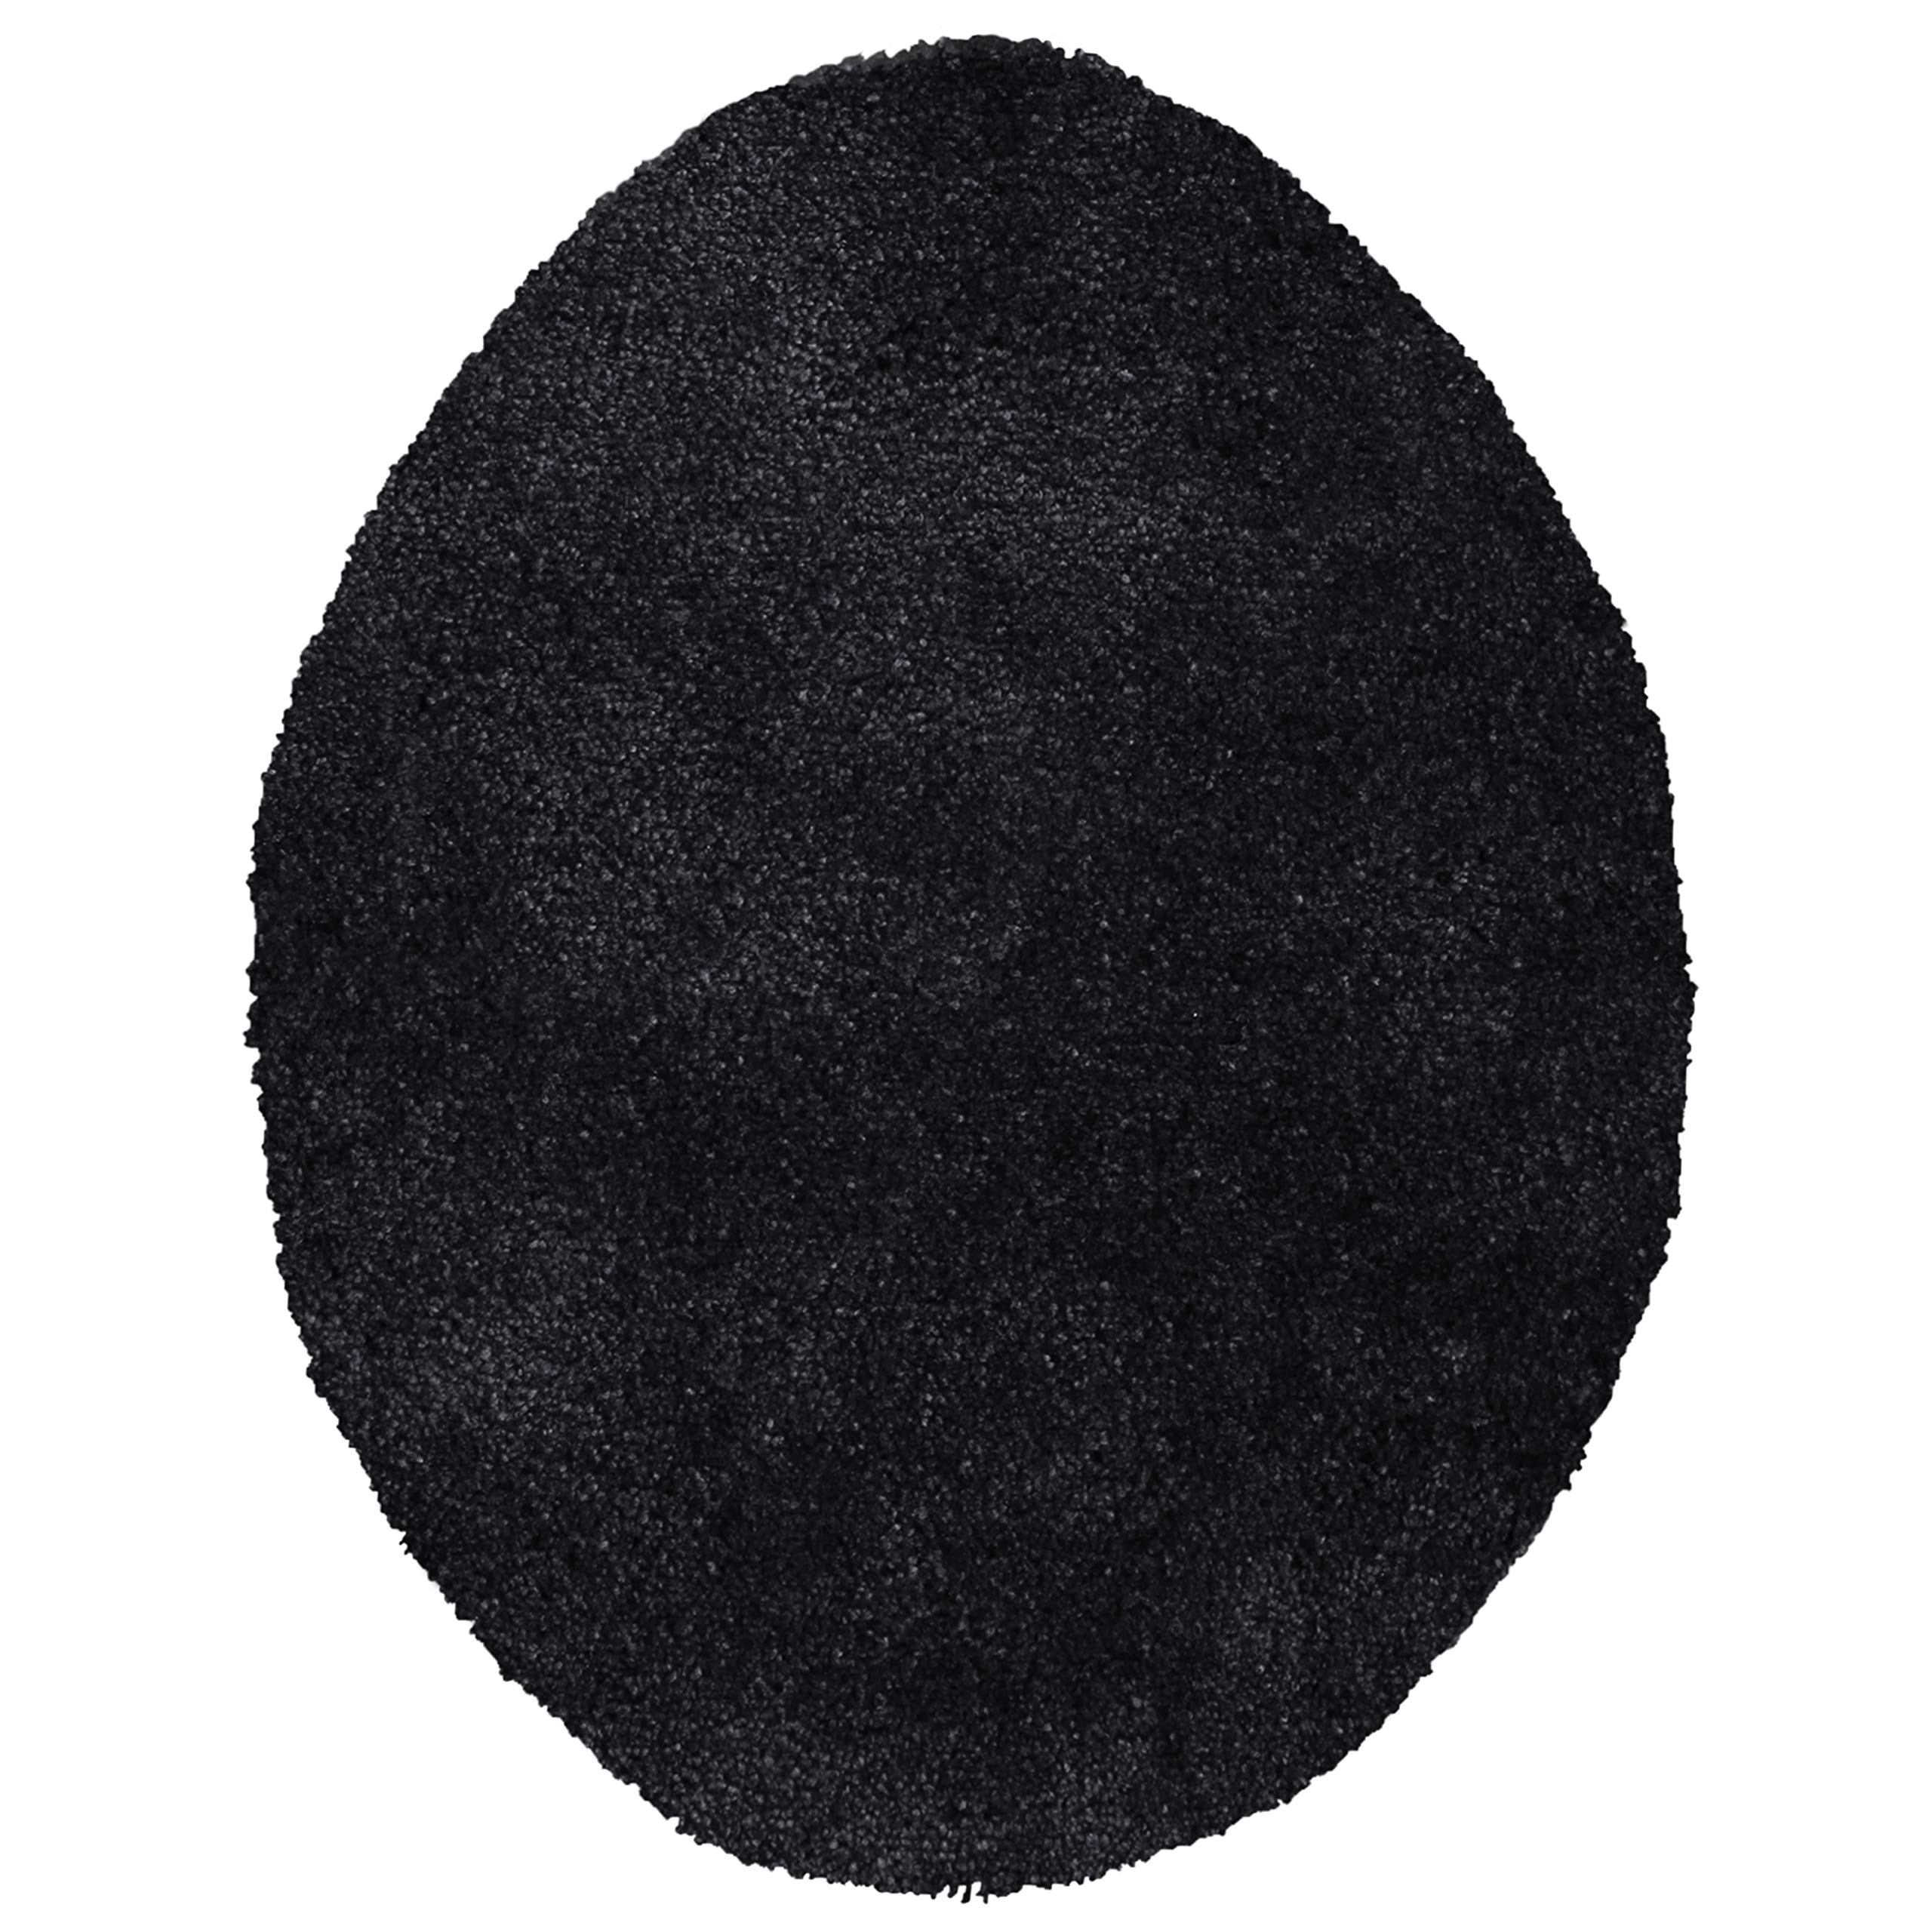 Maples Rugs Toilet Lid Cover-Colorsoft Soft Washable Elongated Seat Rug [Made in USA] Non Slip & Quick Dry for Bathroom, Rich Black by Maples Rugs